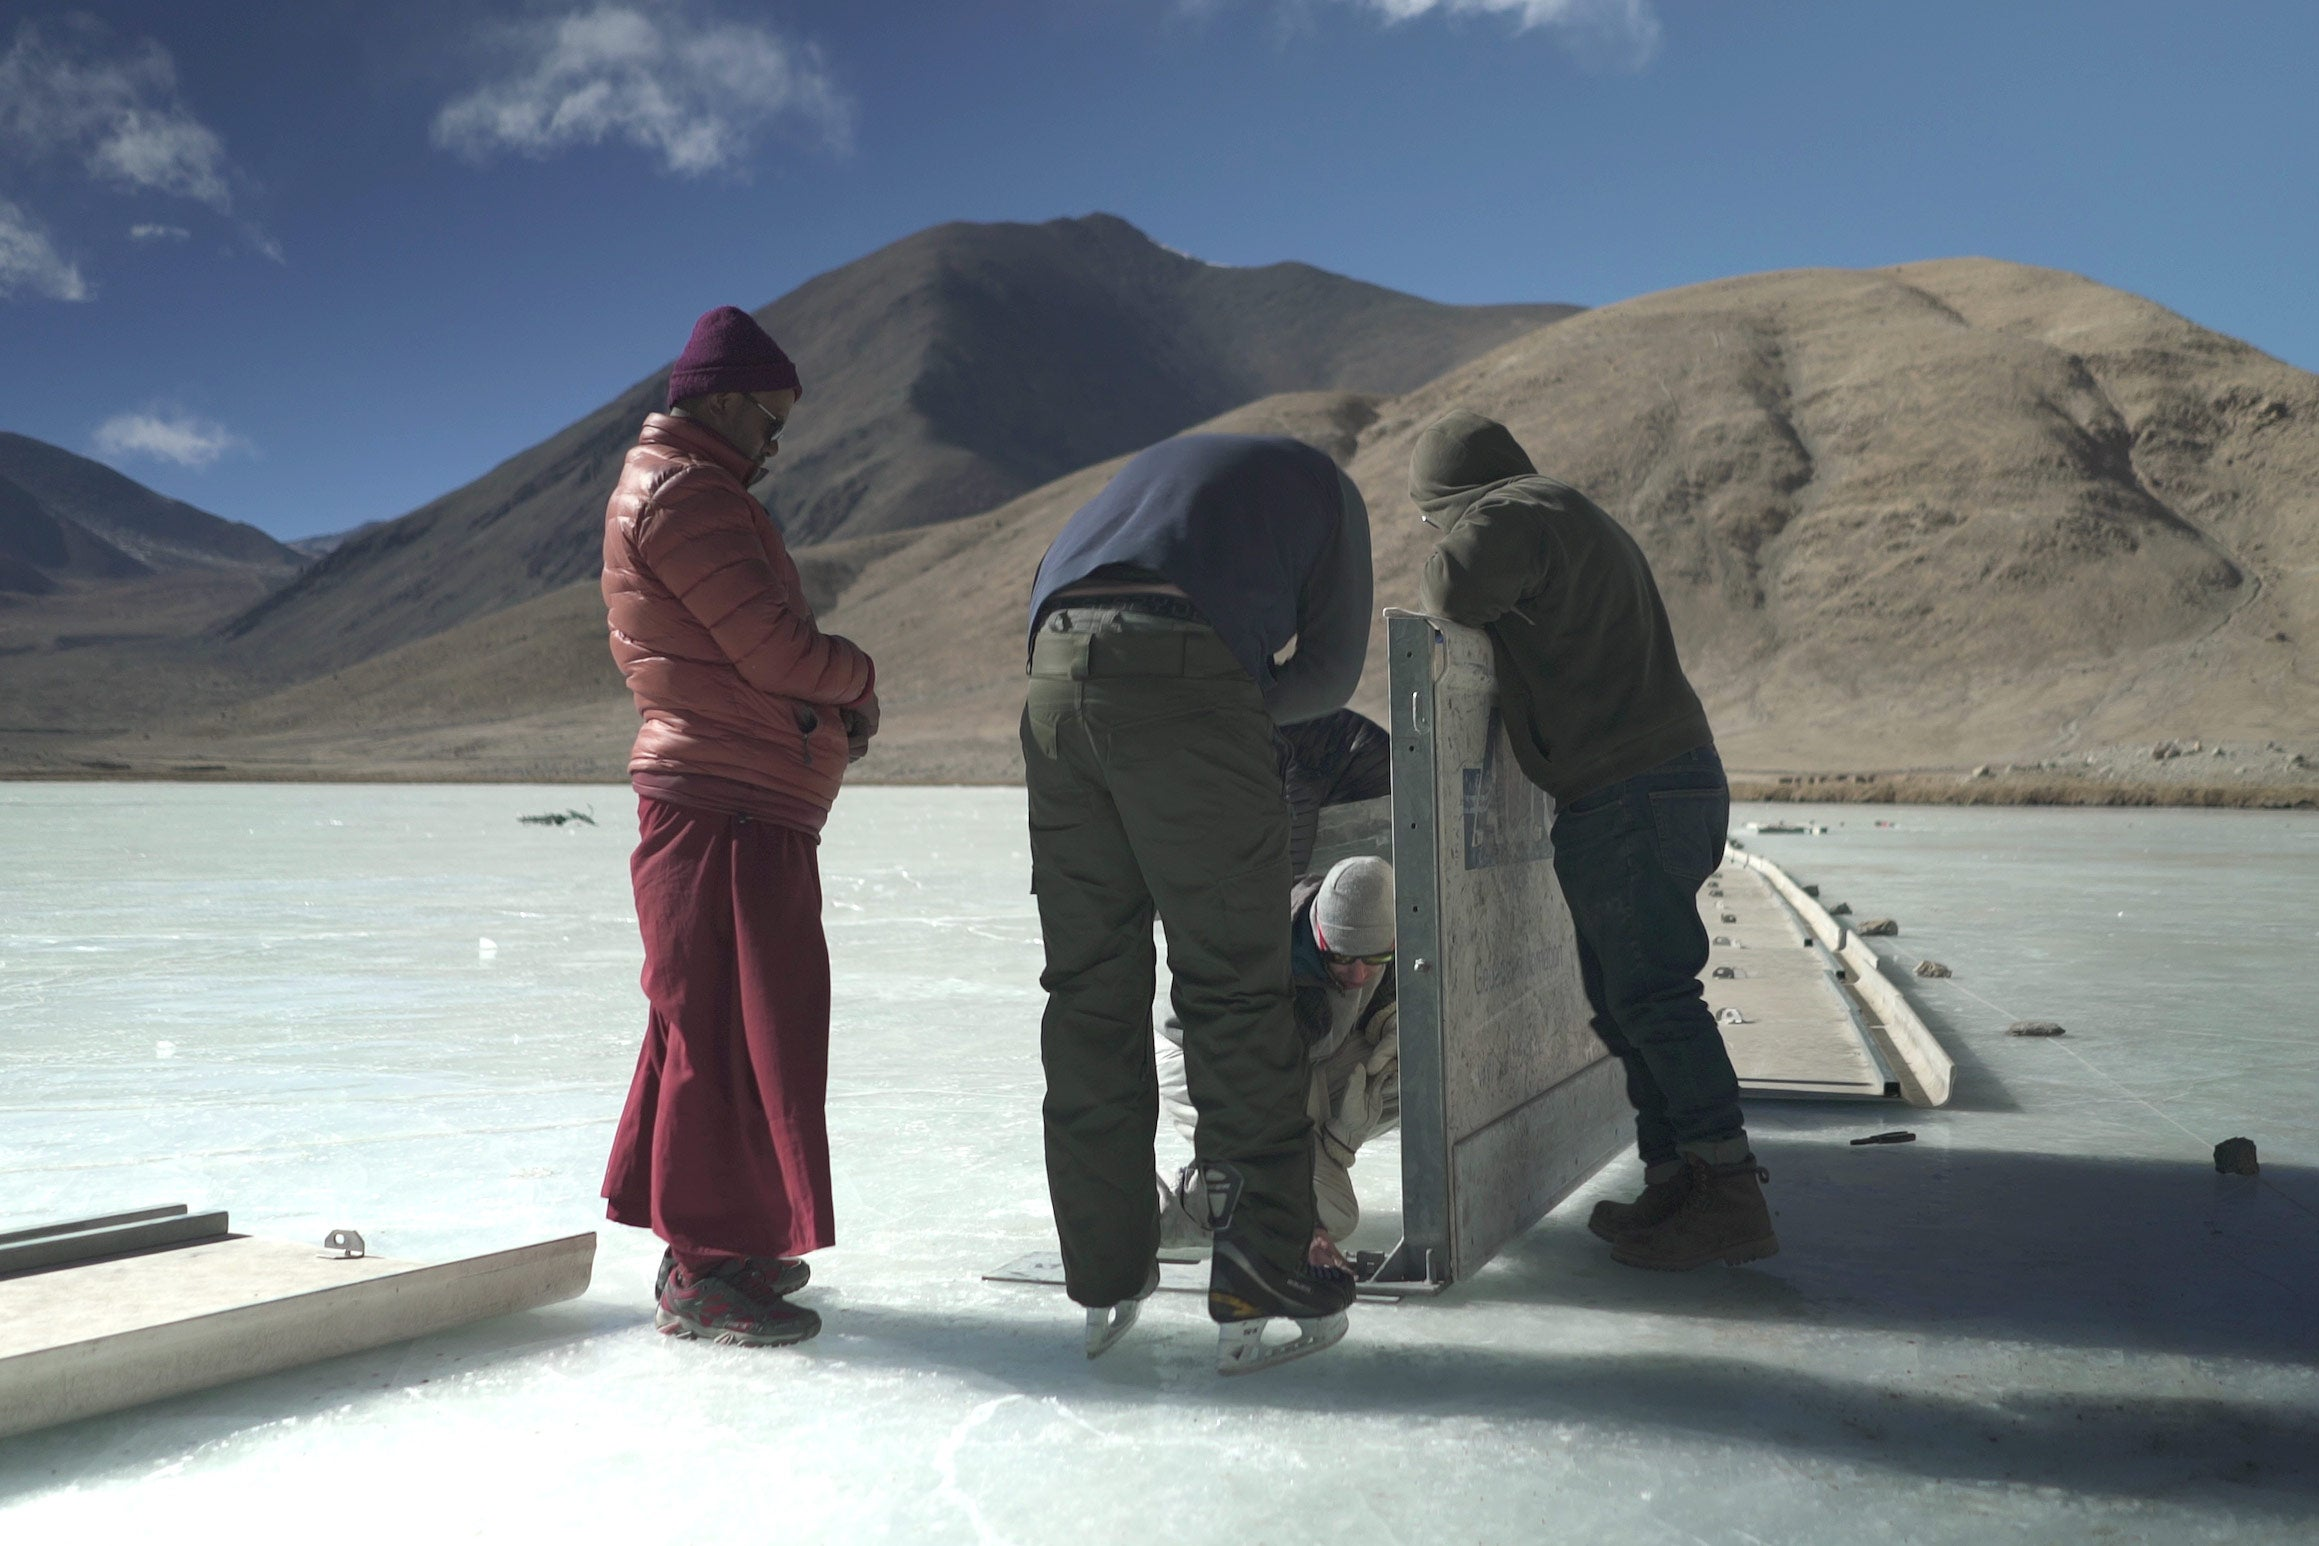 Volunteers from the the Hockey Foundation and local Ladakhis set up boards for the hockey rink.